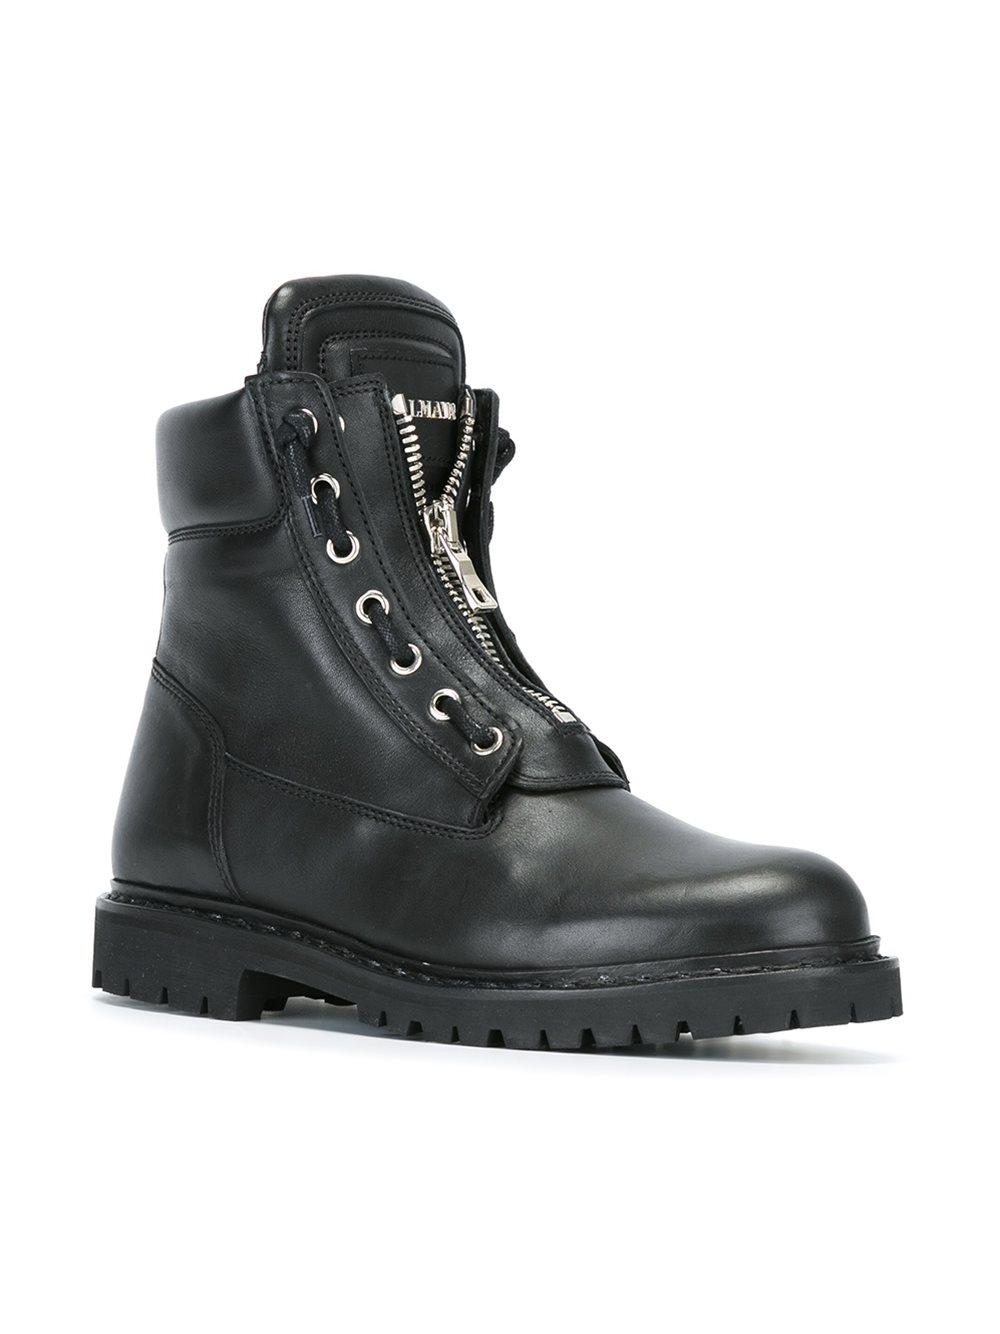 Balmain Leather Taiga Ranger Boots In Black For Men Lyst